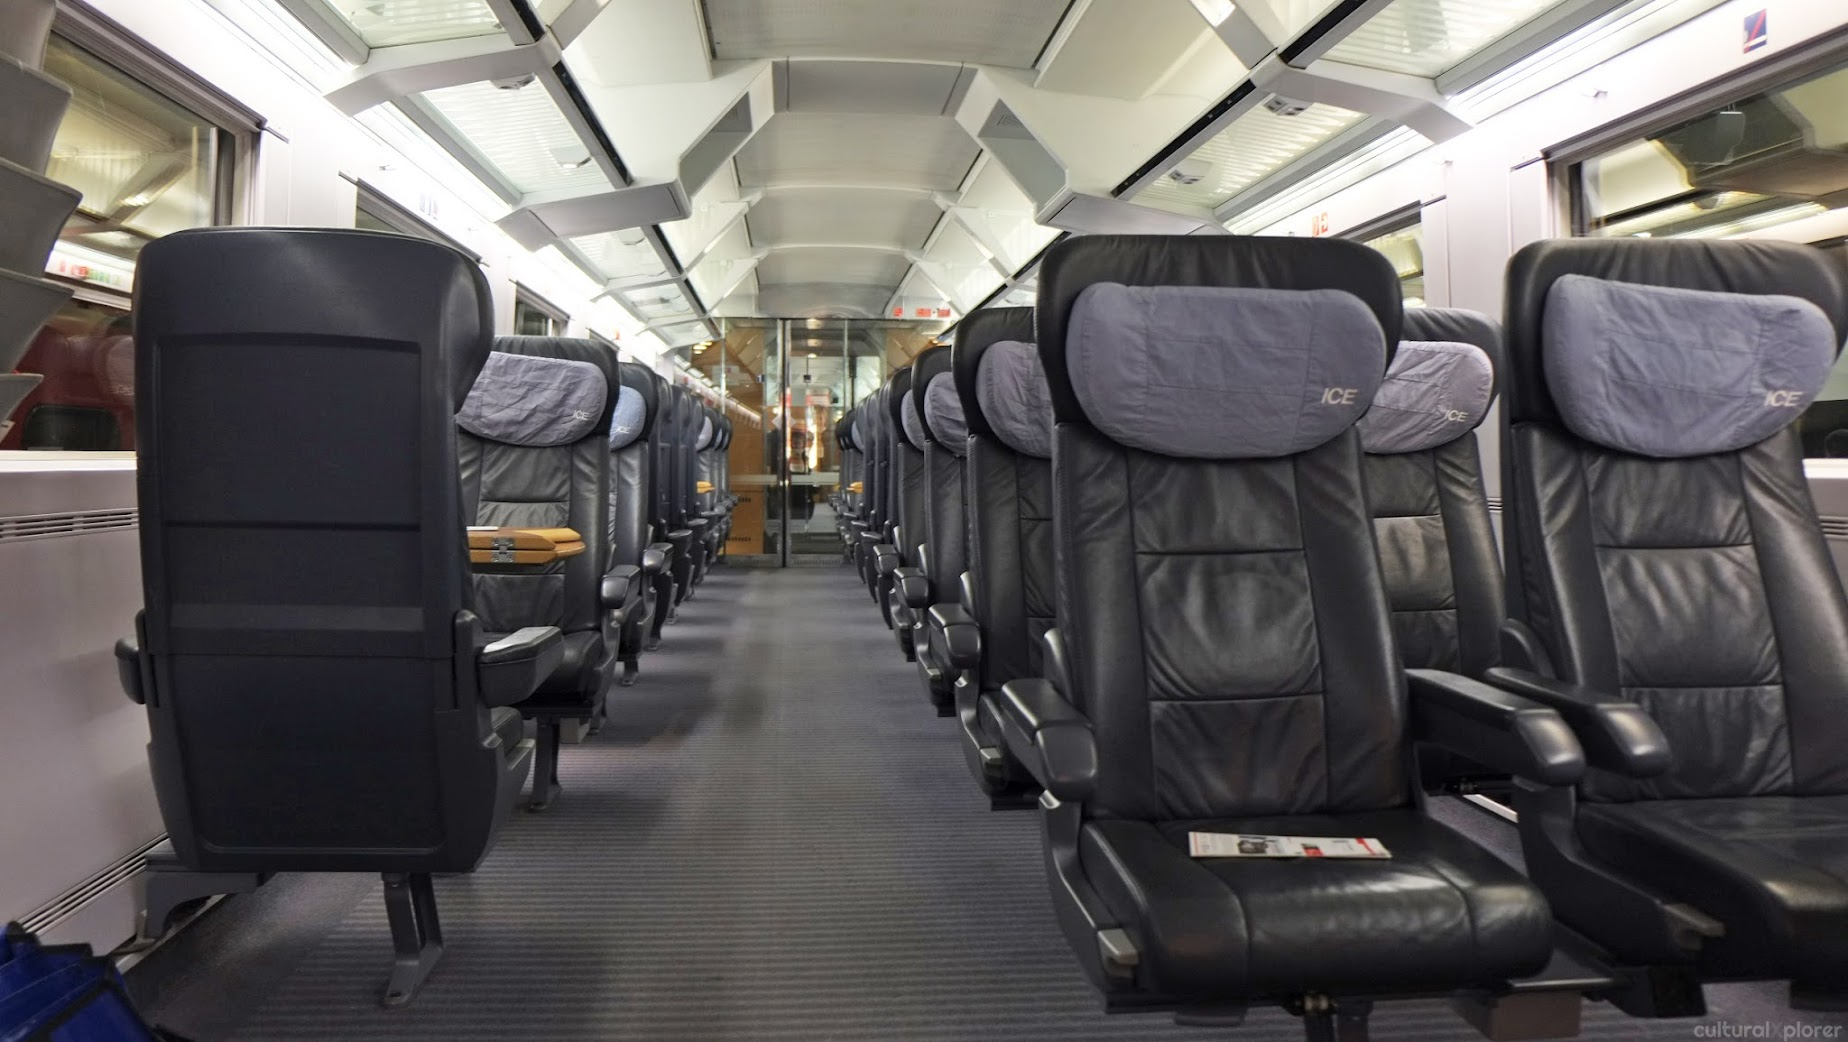 First class train through Switzerland into Germany